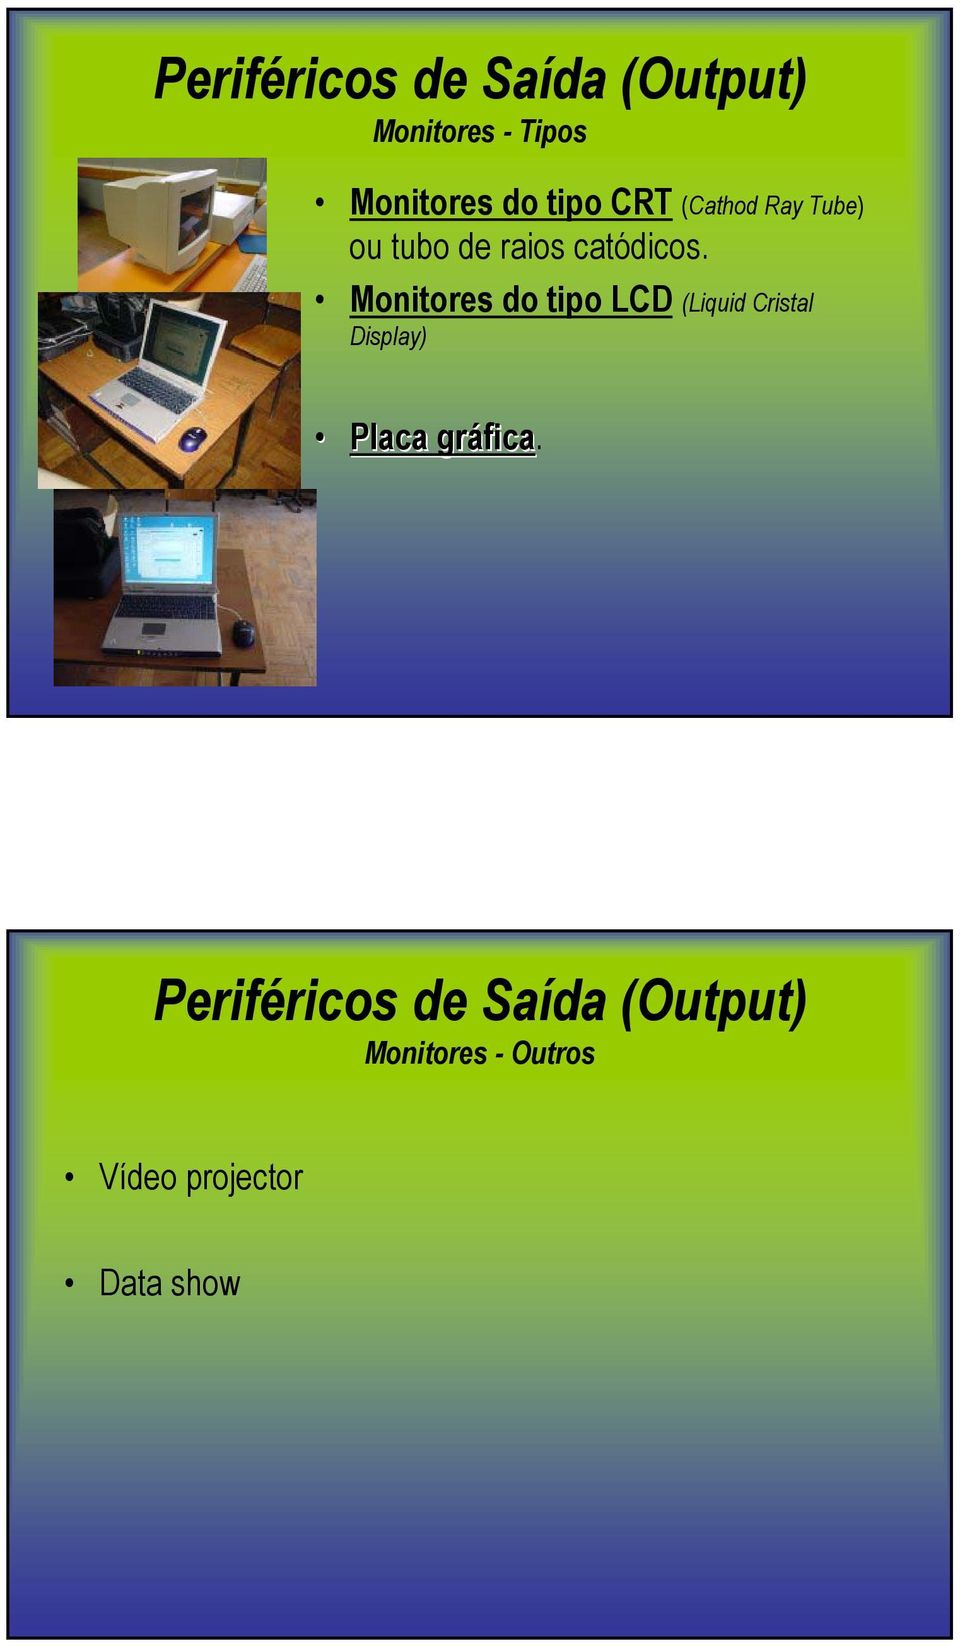 Monitores do tipo LCD (Liquid Cristal Display) Placa gráfica.